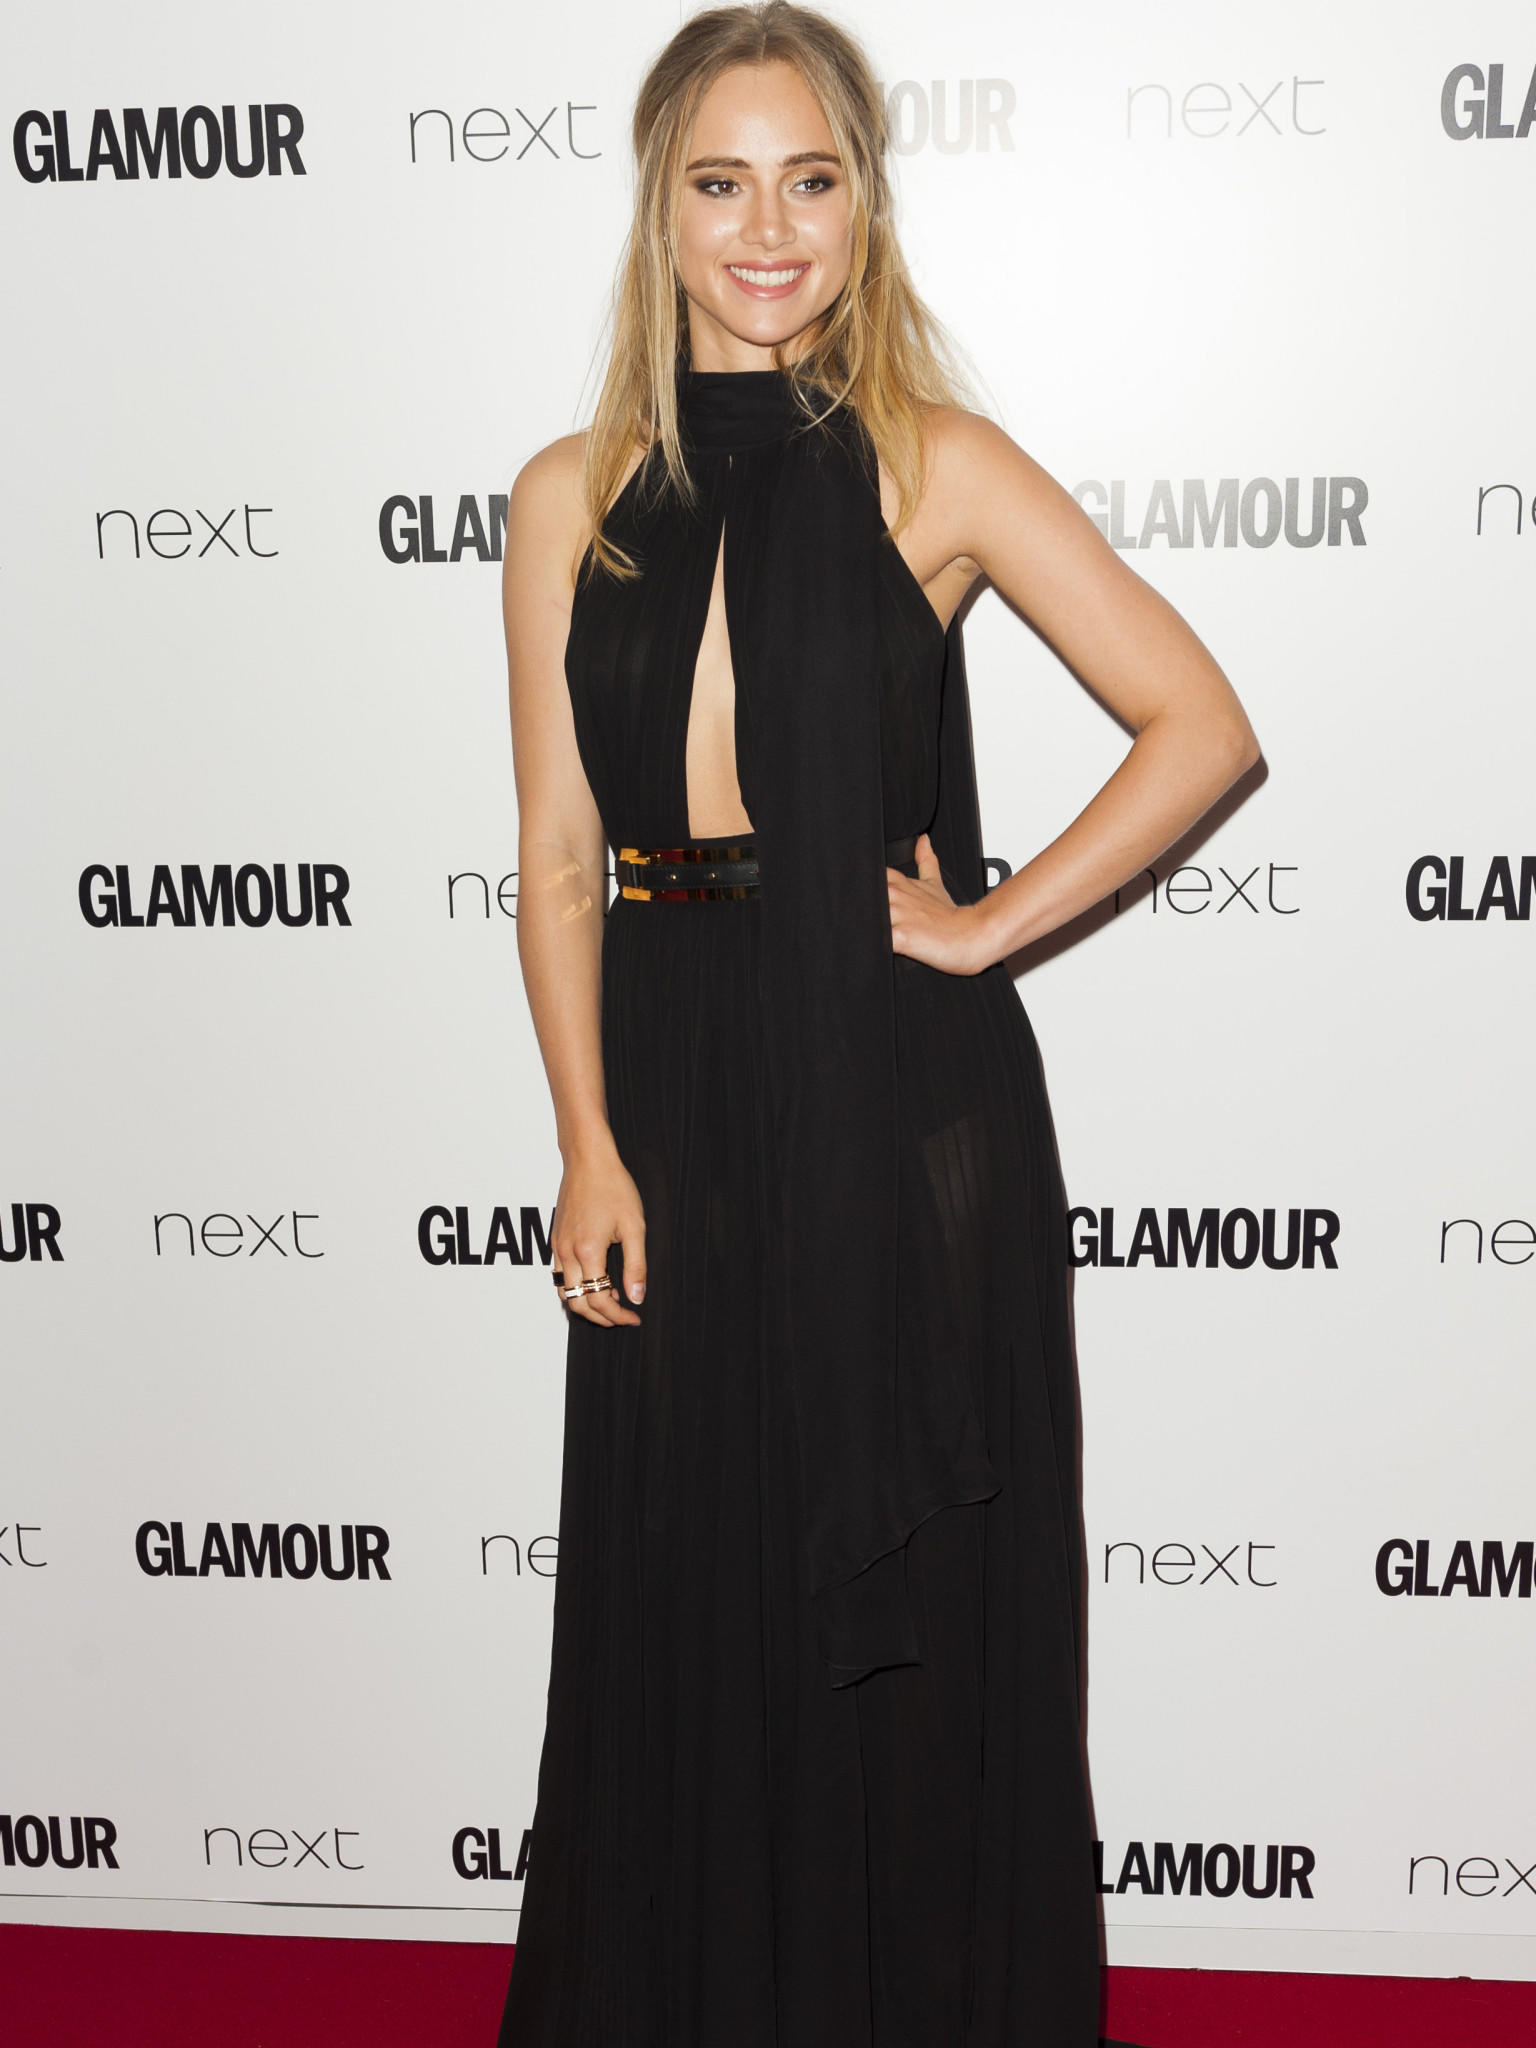 Glamour Women of the Year Awards 2015 UK